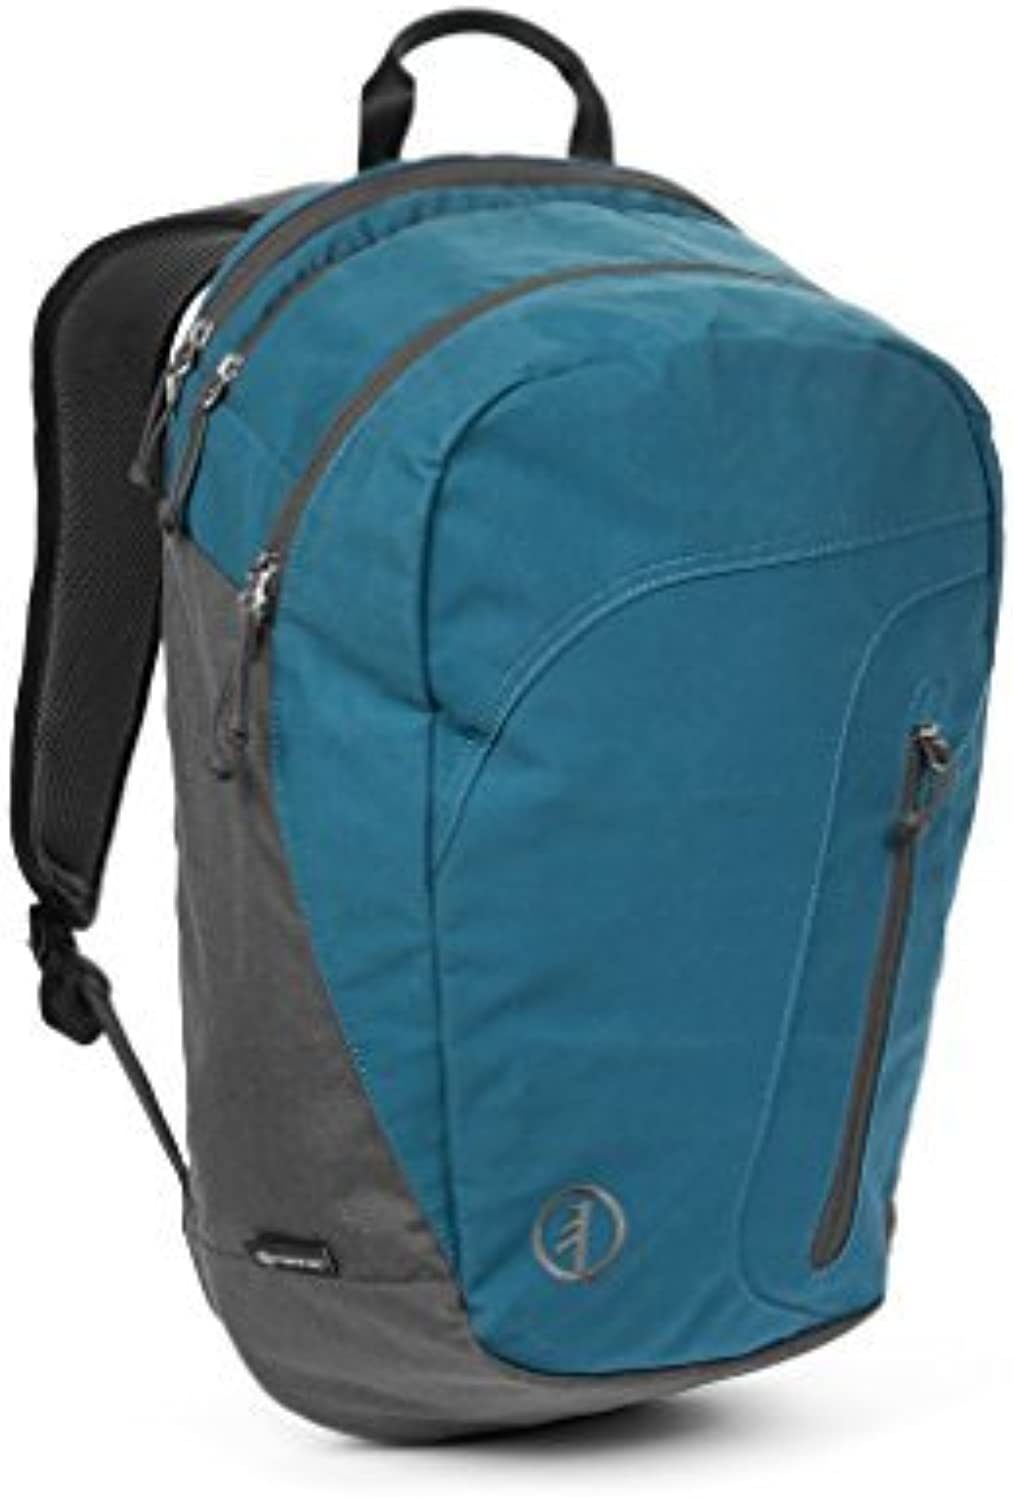 Tamrac Hoodoo 18 Camera Backpack (Ocean) by Tamrac